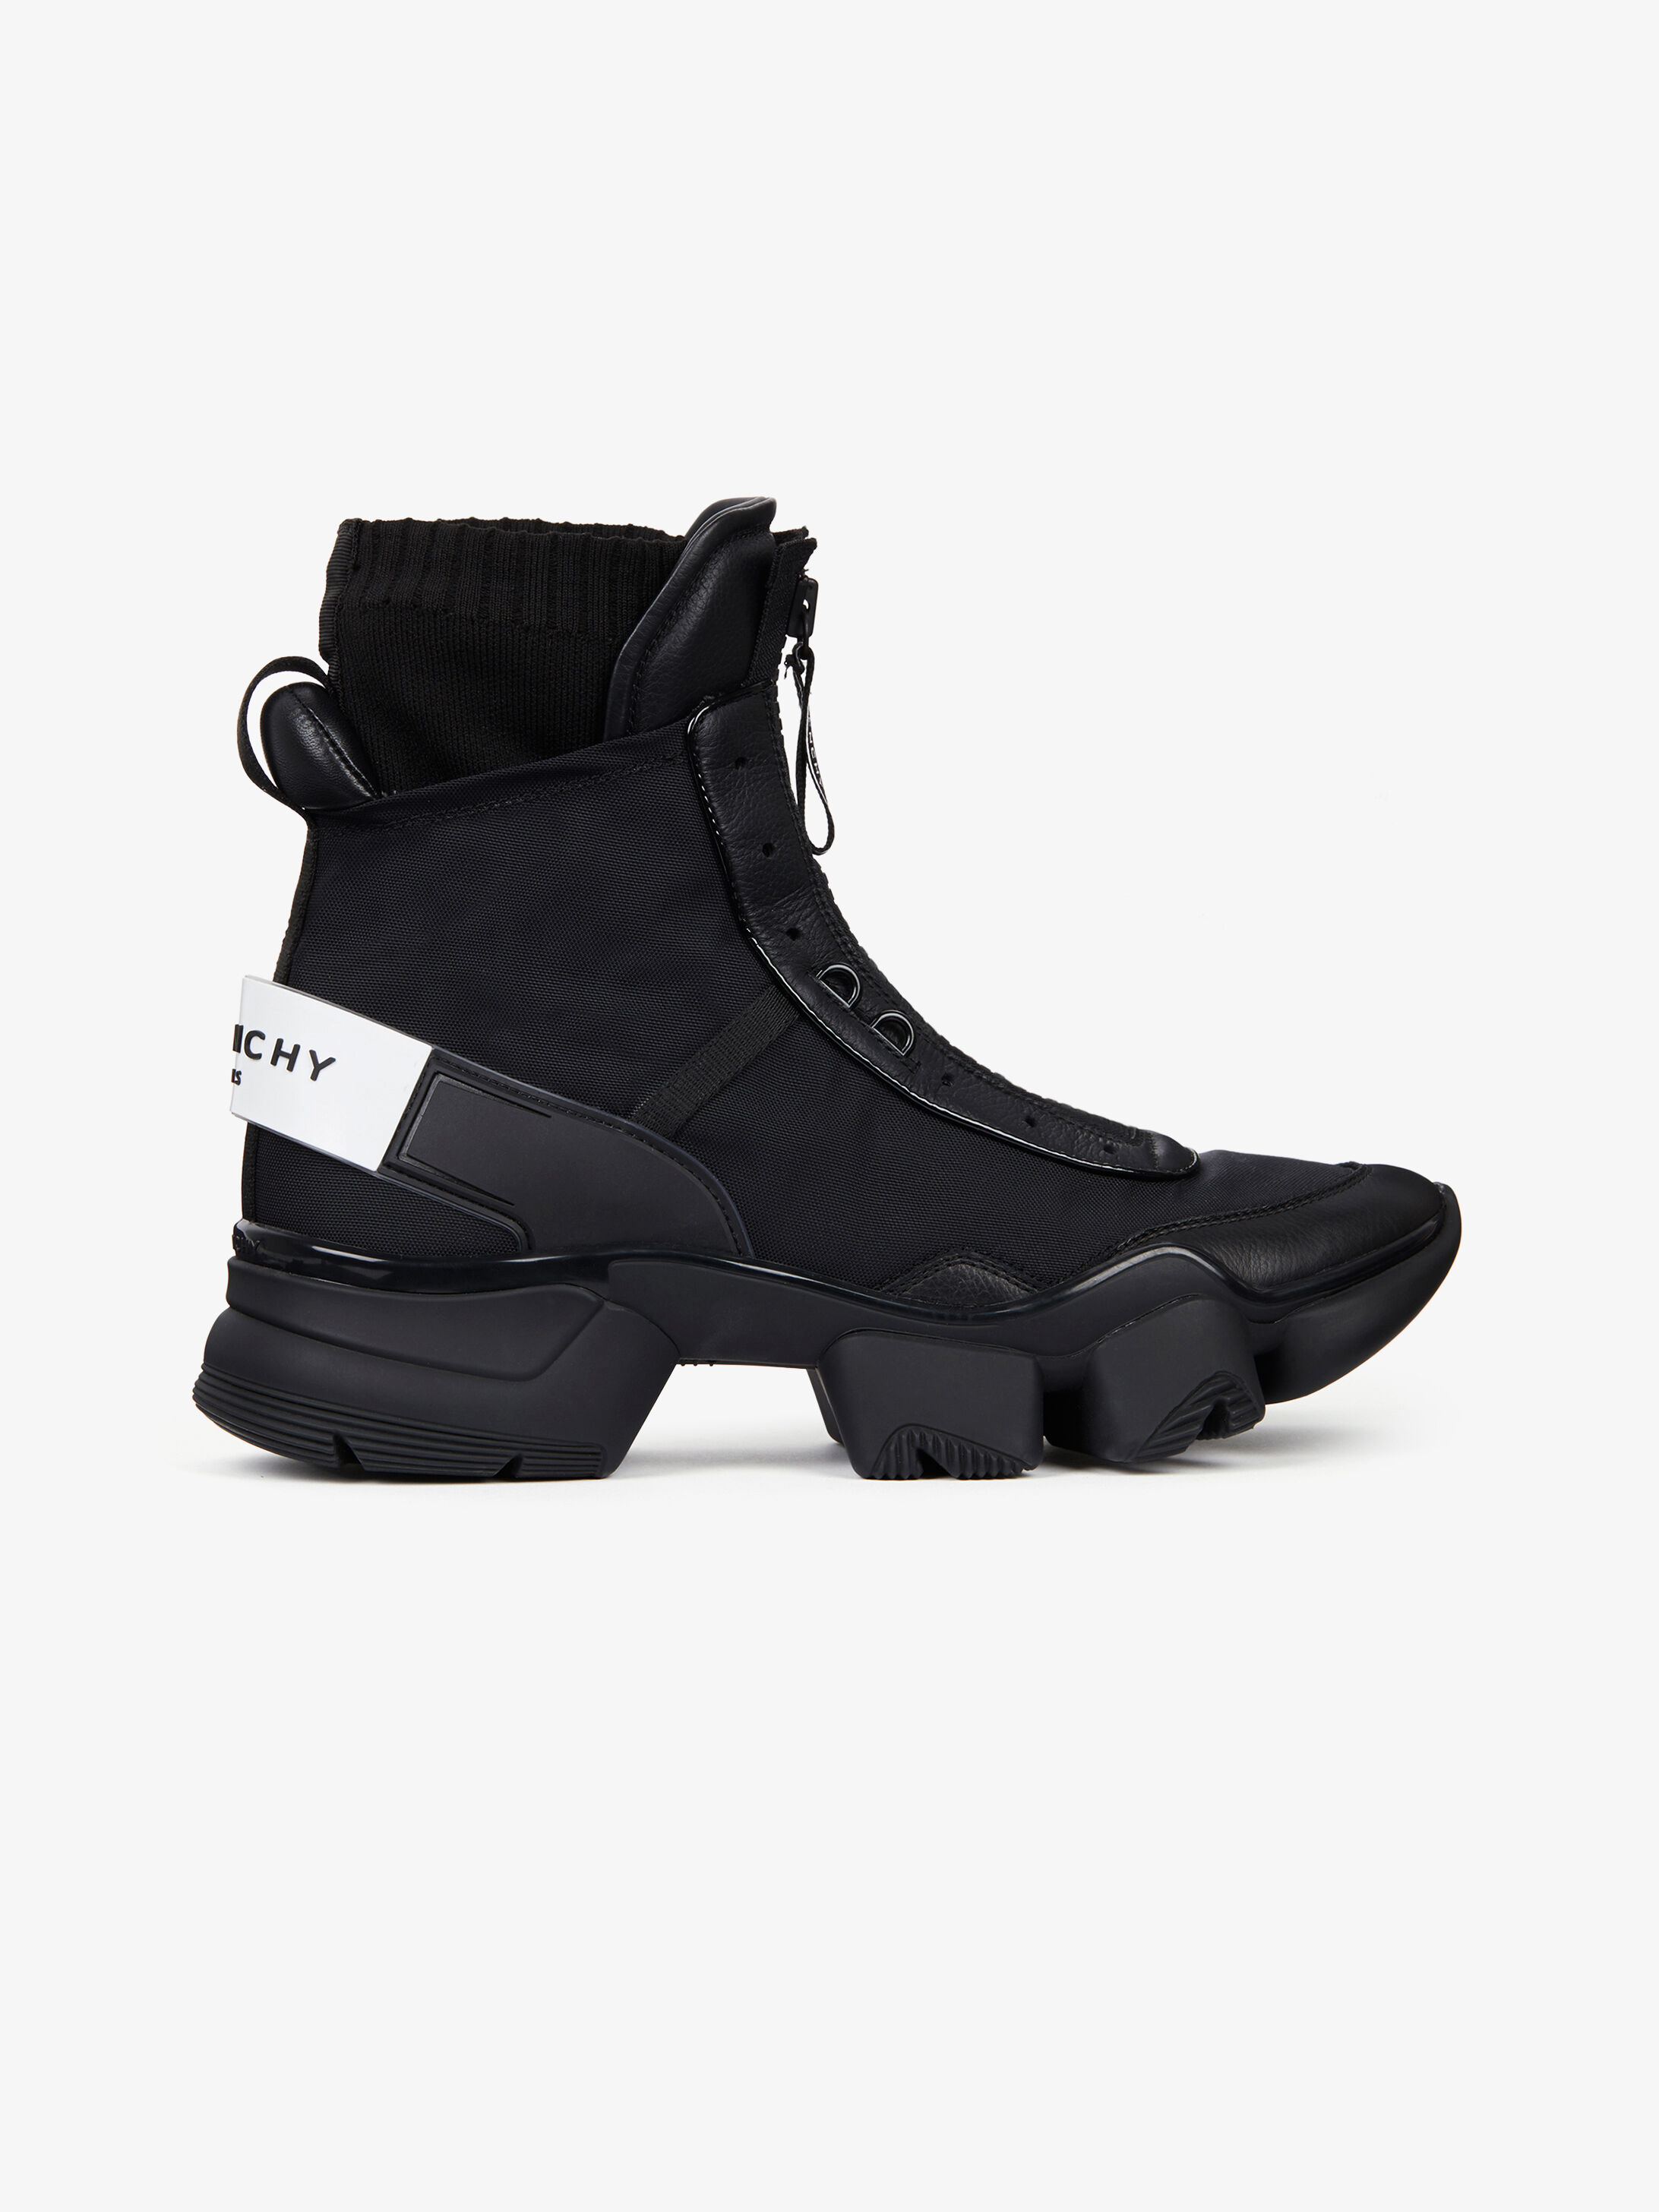 7f8e3ea93427 Men s Sneakers collection by Givenchy.